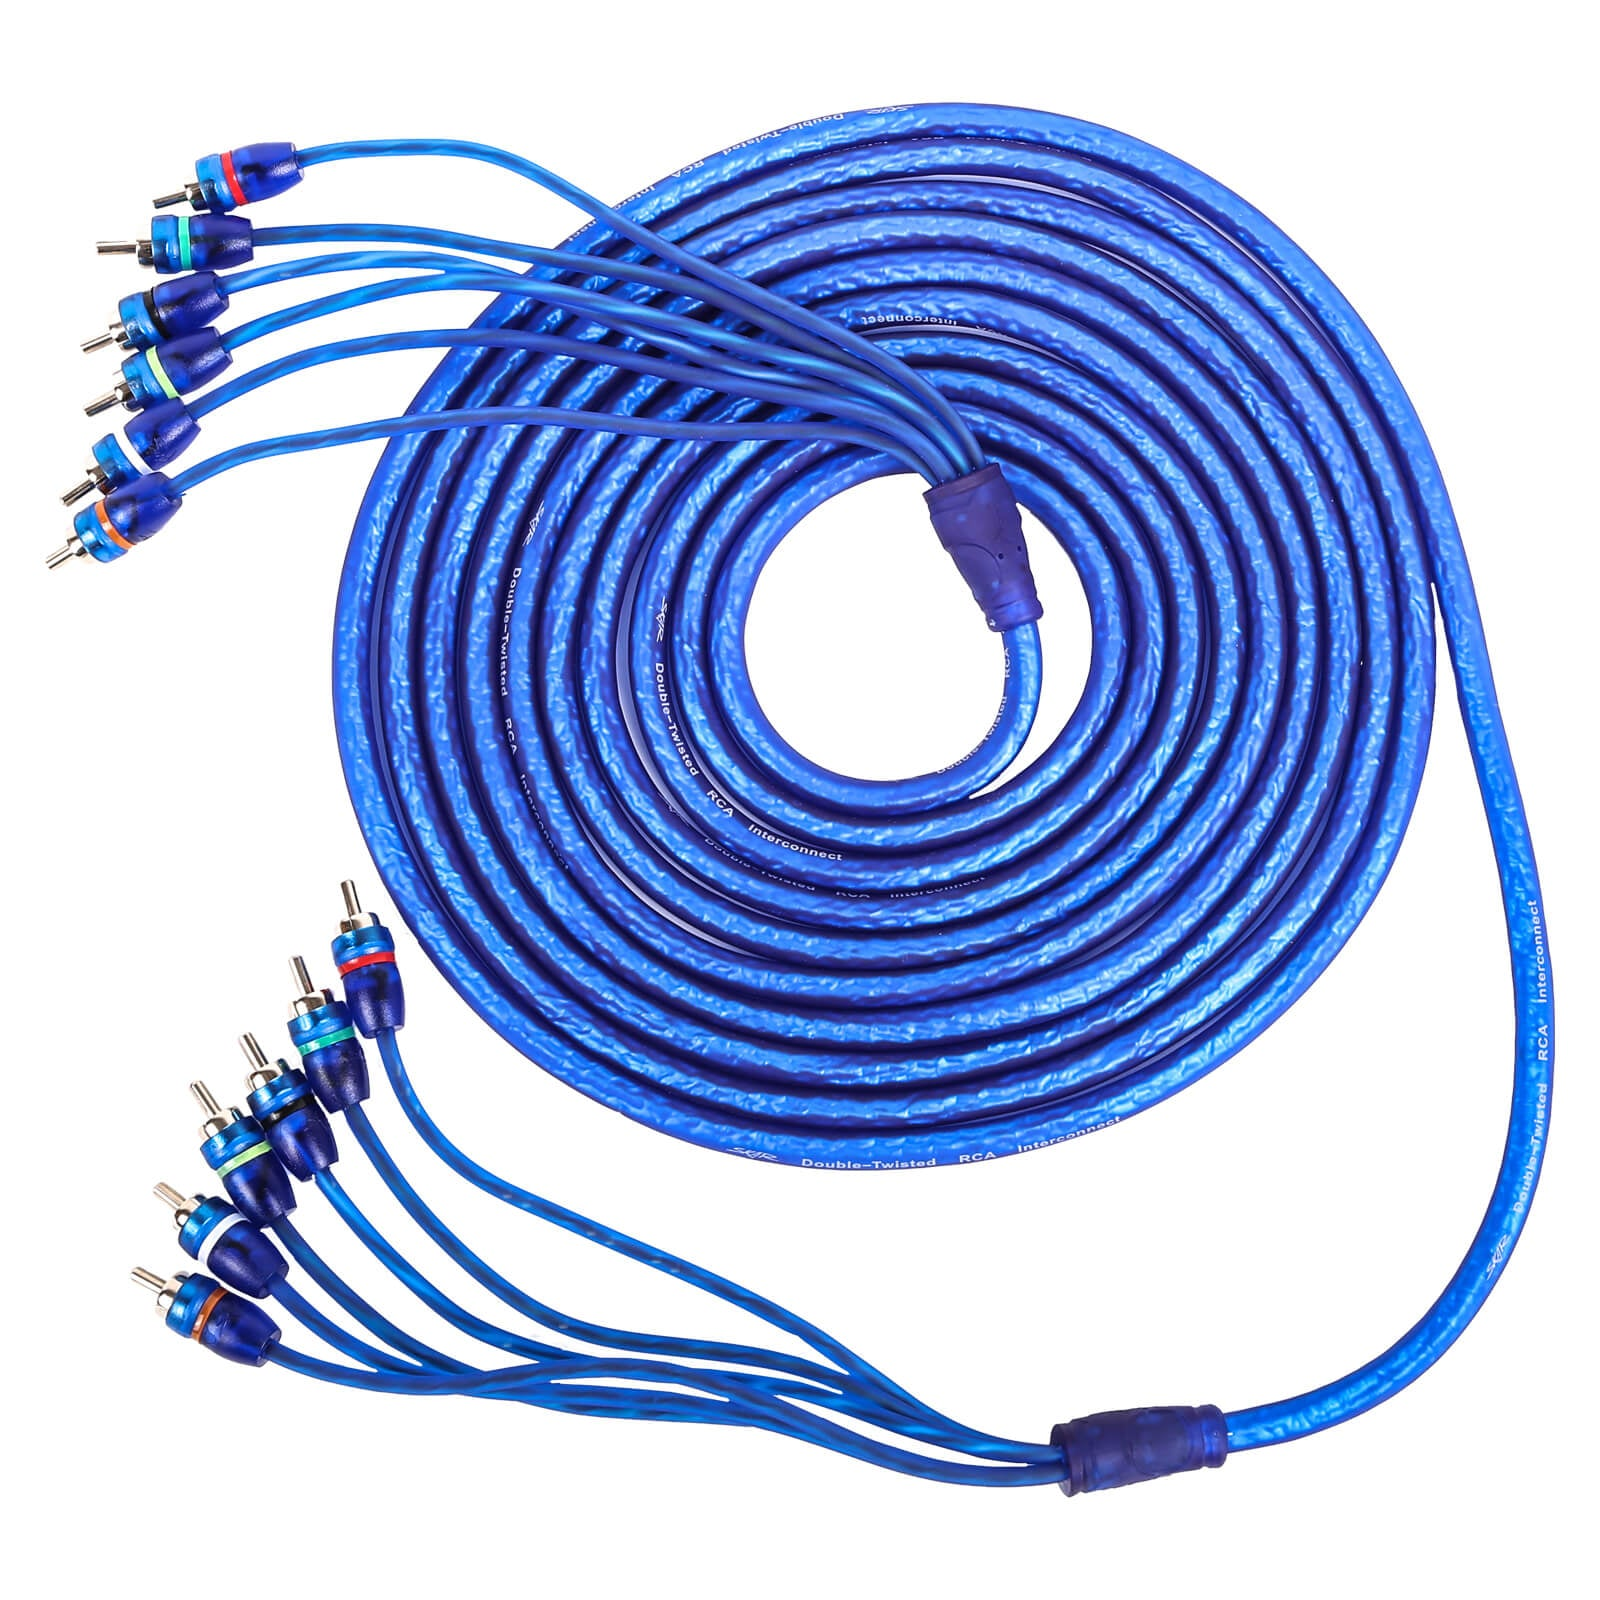 17 Ft 6-Channel Twisted Pair RCA Interconnect Cable (SKAR6CH-RCA17)